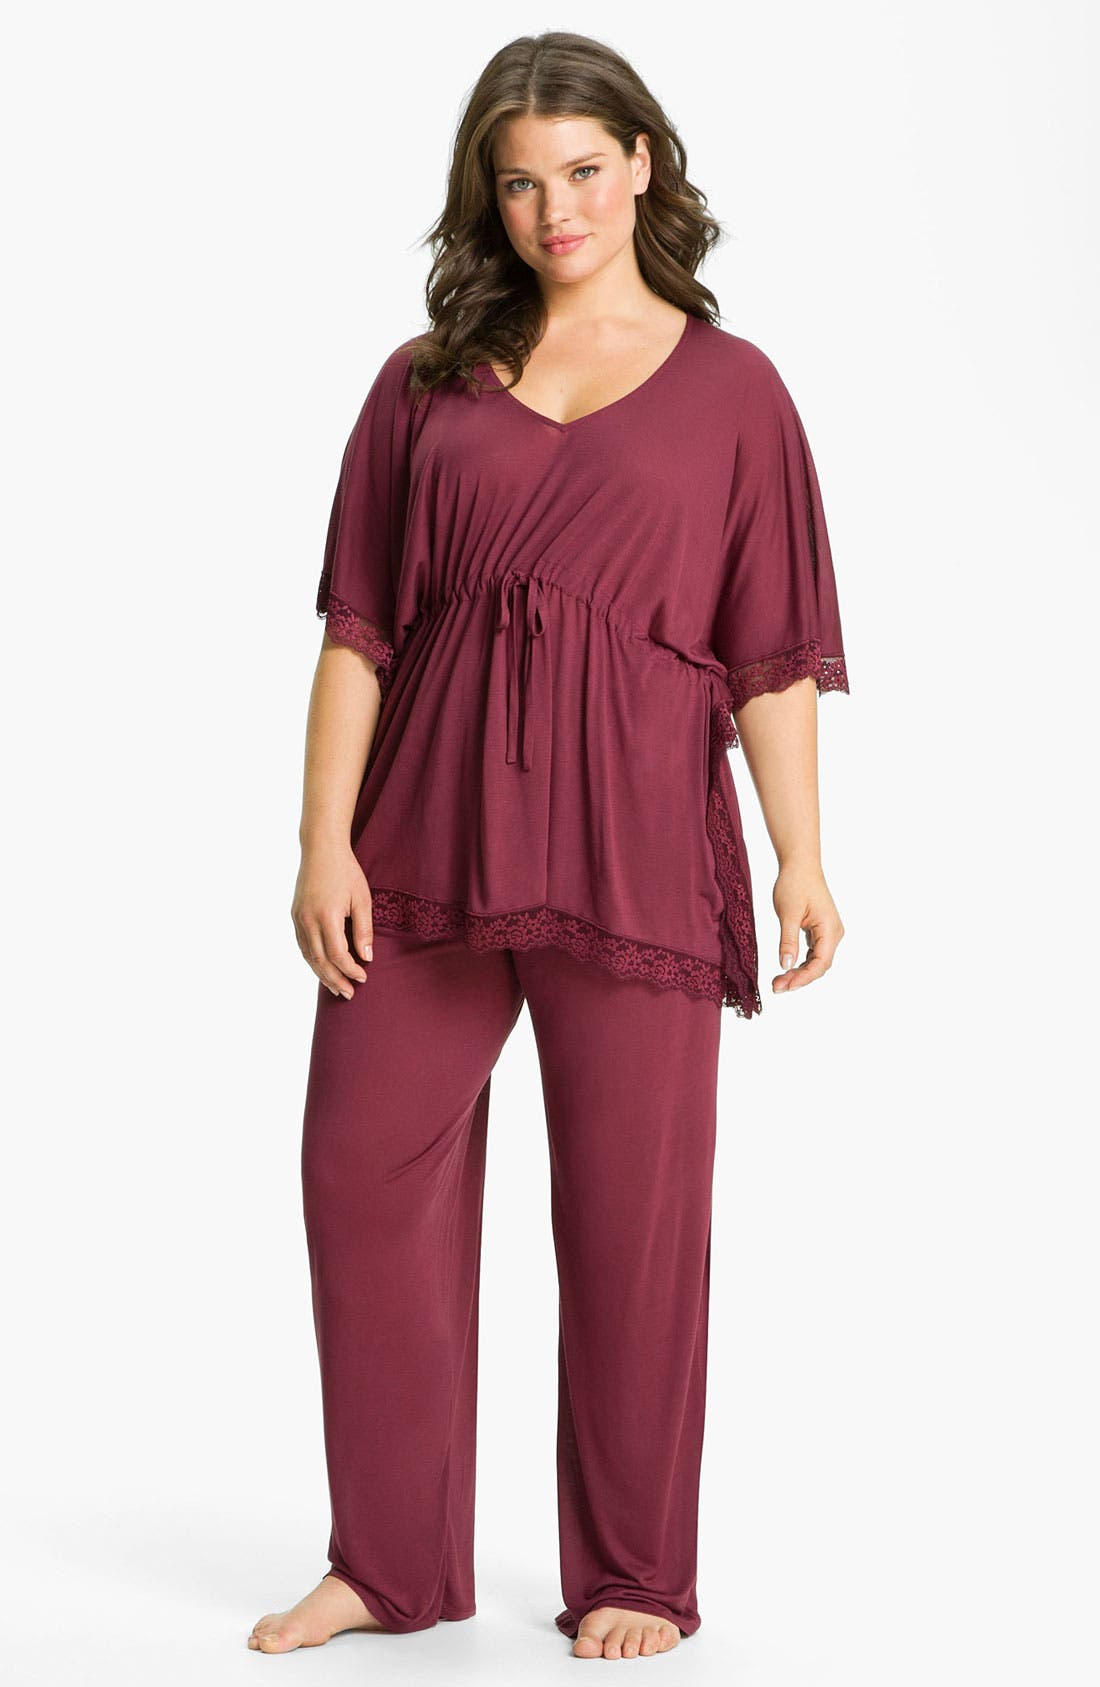 Main Image - Midnight by Carole Hochman 'Everlasting Love' Pajamas (Plus)